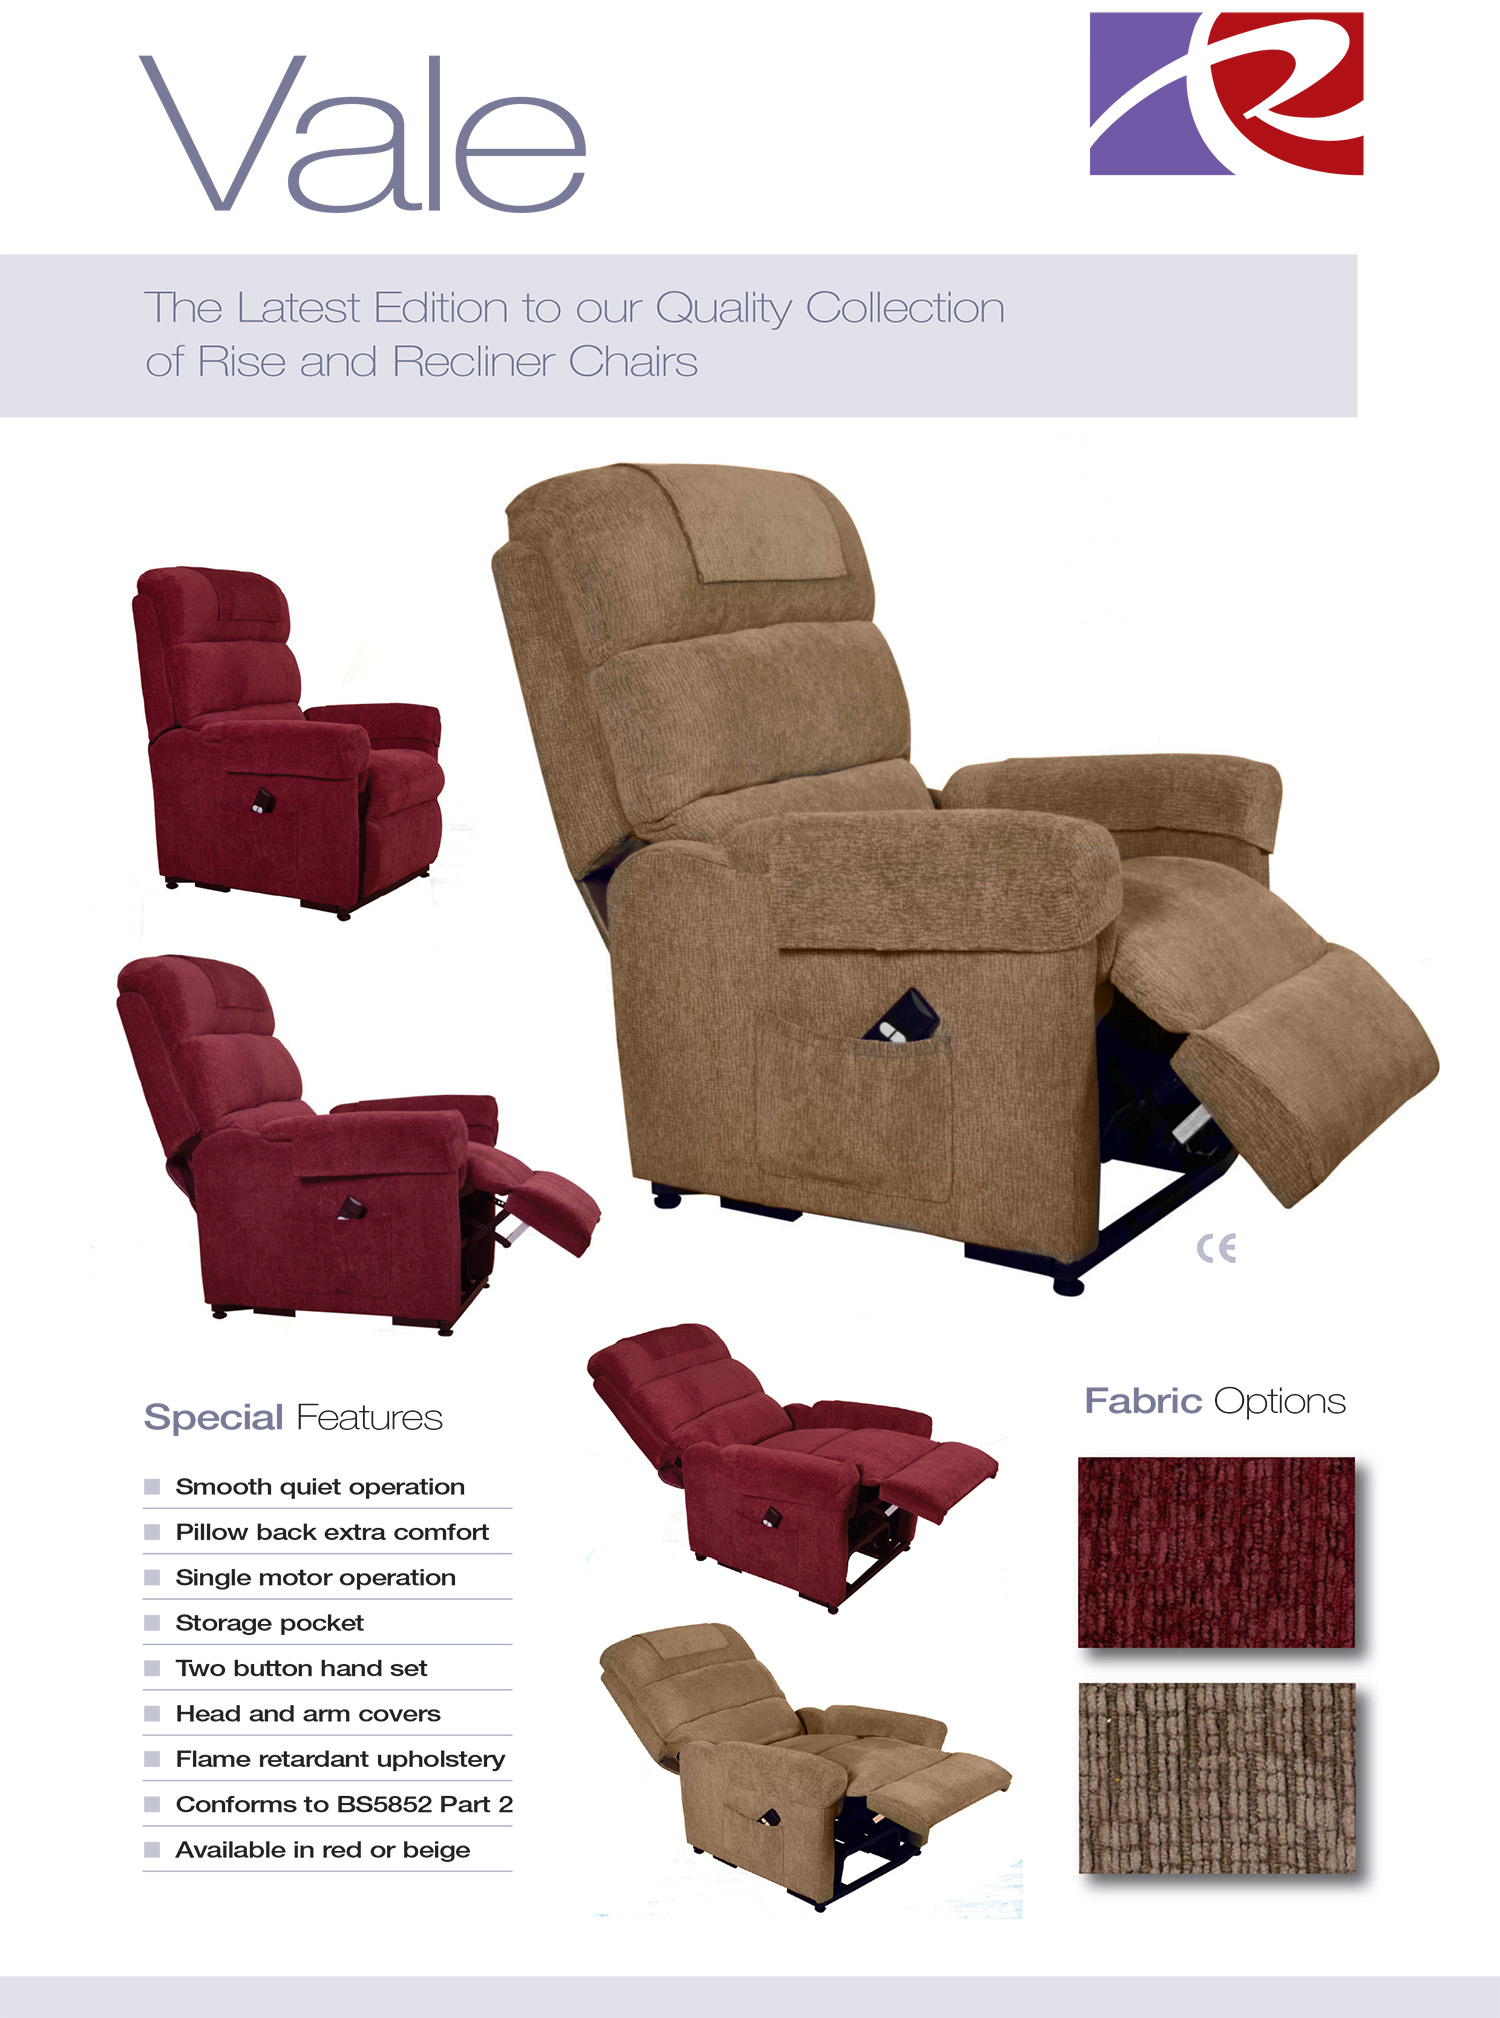 New RECLINER CHAIRS (Nov 2013)_New Dalerise Leaflet (May 09)